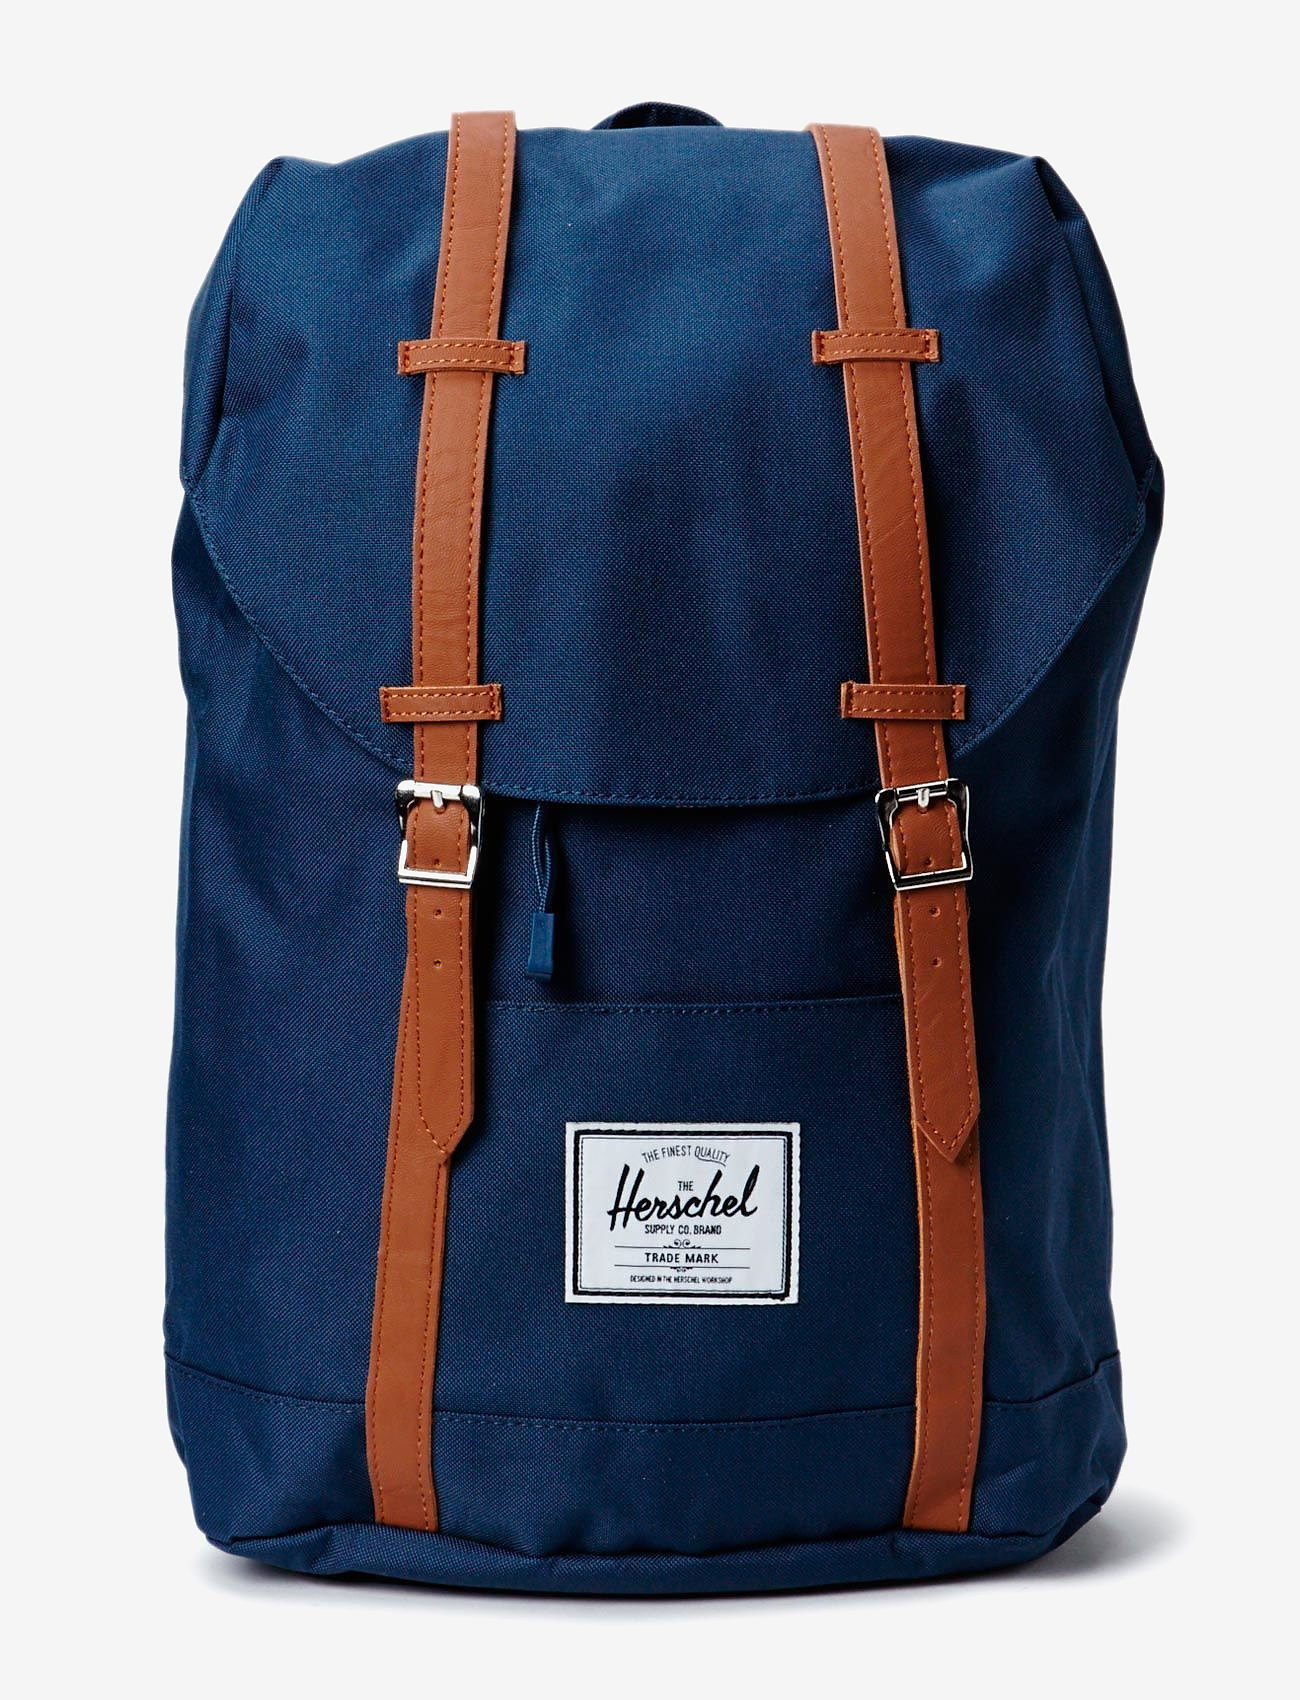 Herschel - Retreat - Navy - rygsække - navy - 0